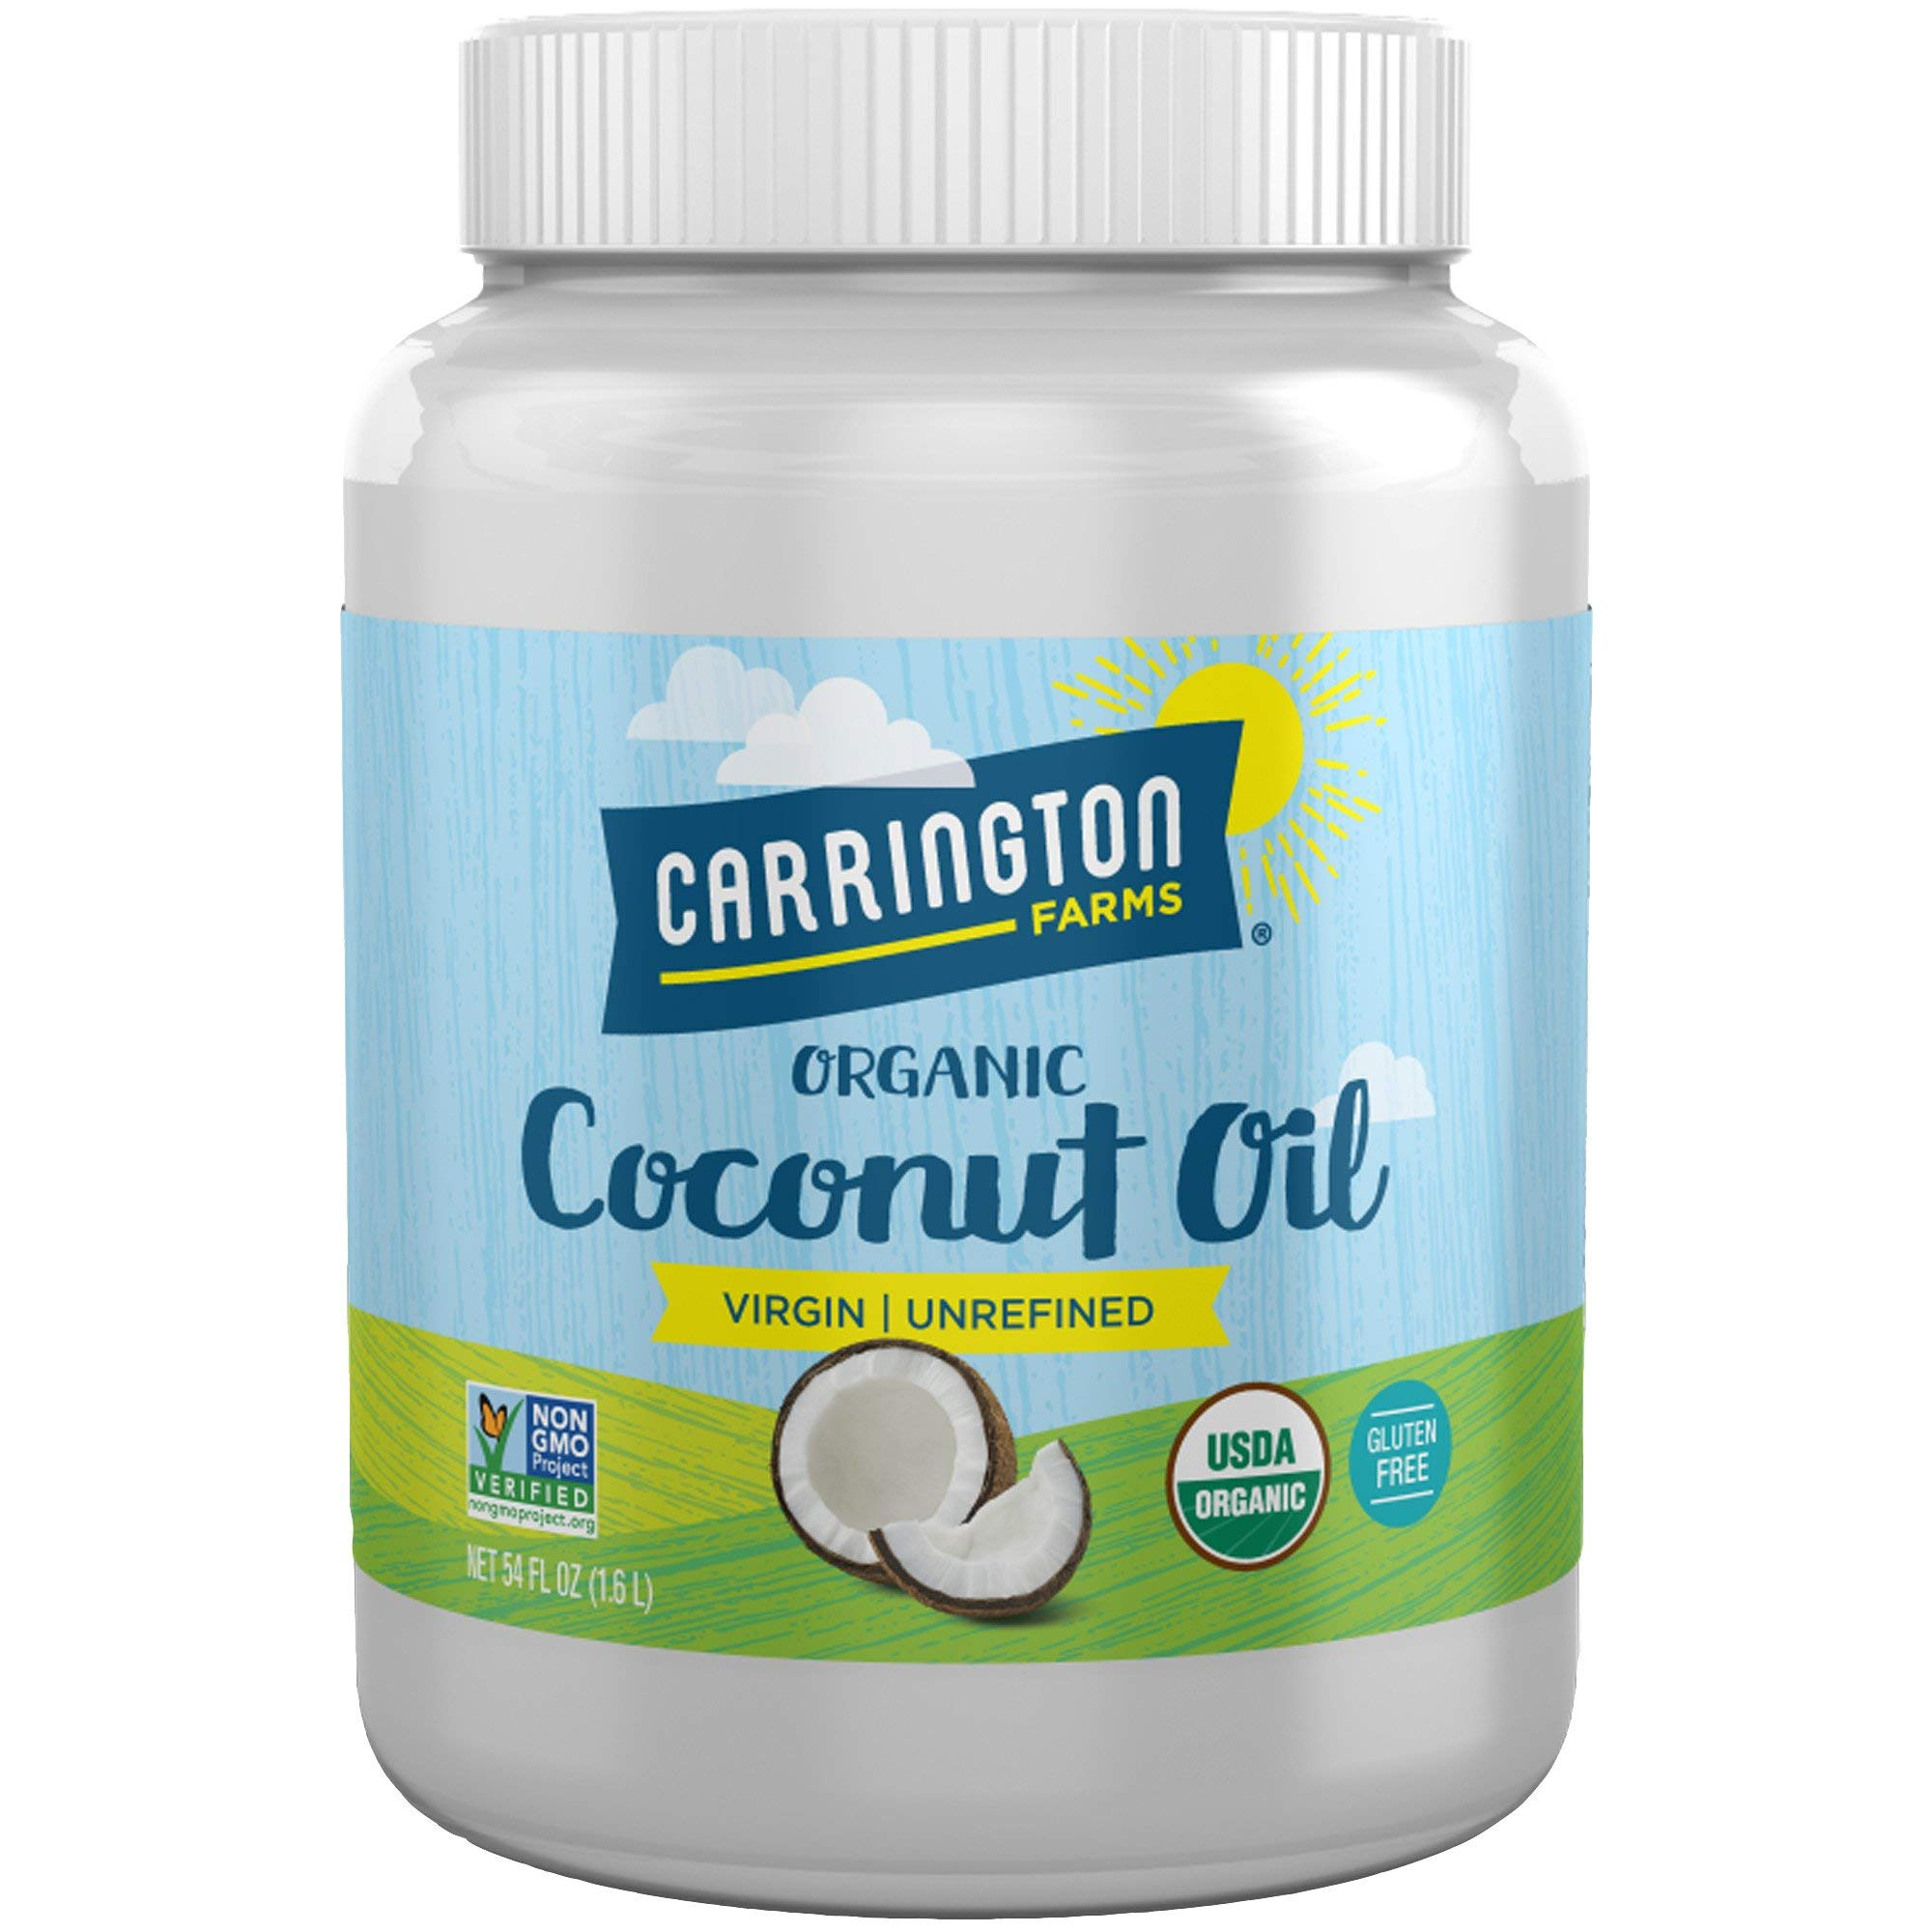 Virgin Organic Coconut Oil,Coconut Oil for Skin & Hair Care, Cooking, Baking, Smoothies- 2- Pack by Carrington Farms